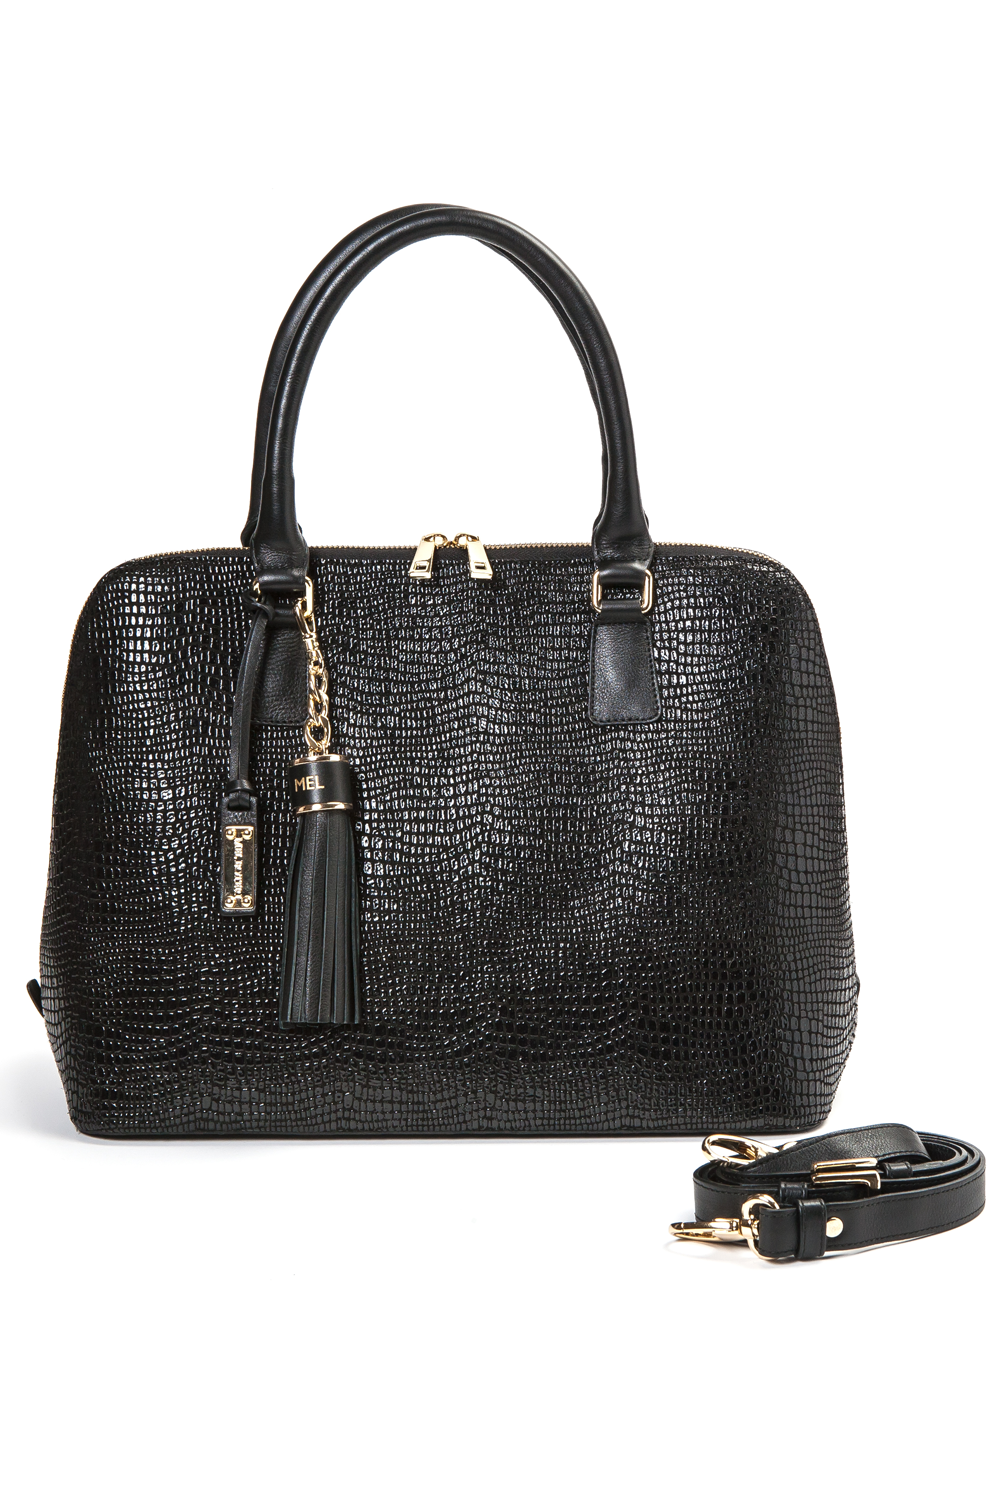 Mel Boteri | High Gloss, Black Lizard-Print Leather 'Watson' Tote | With Strap View